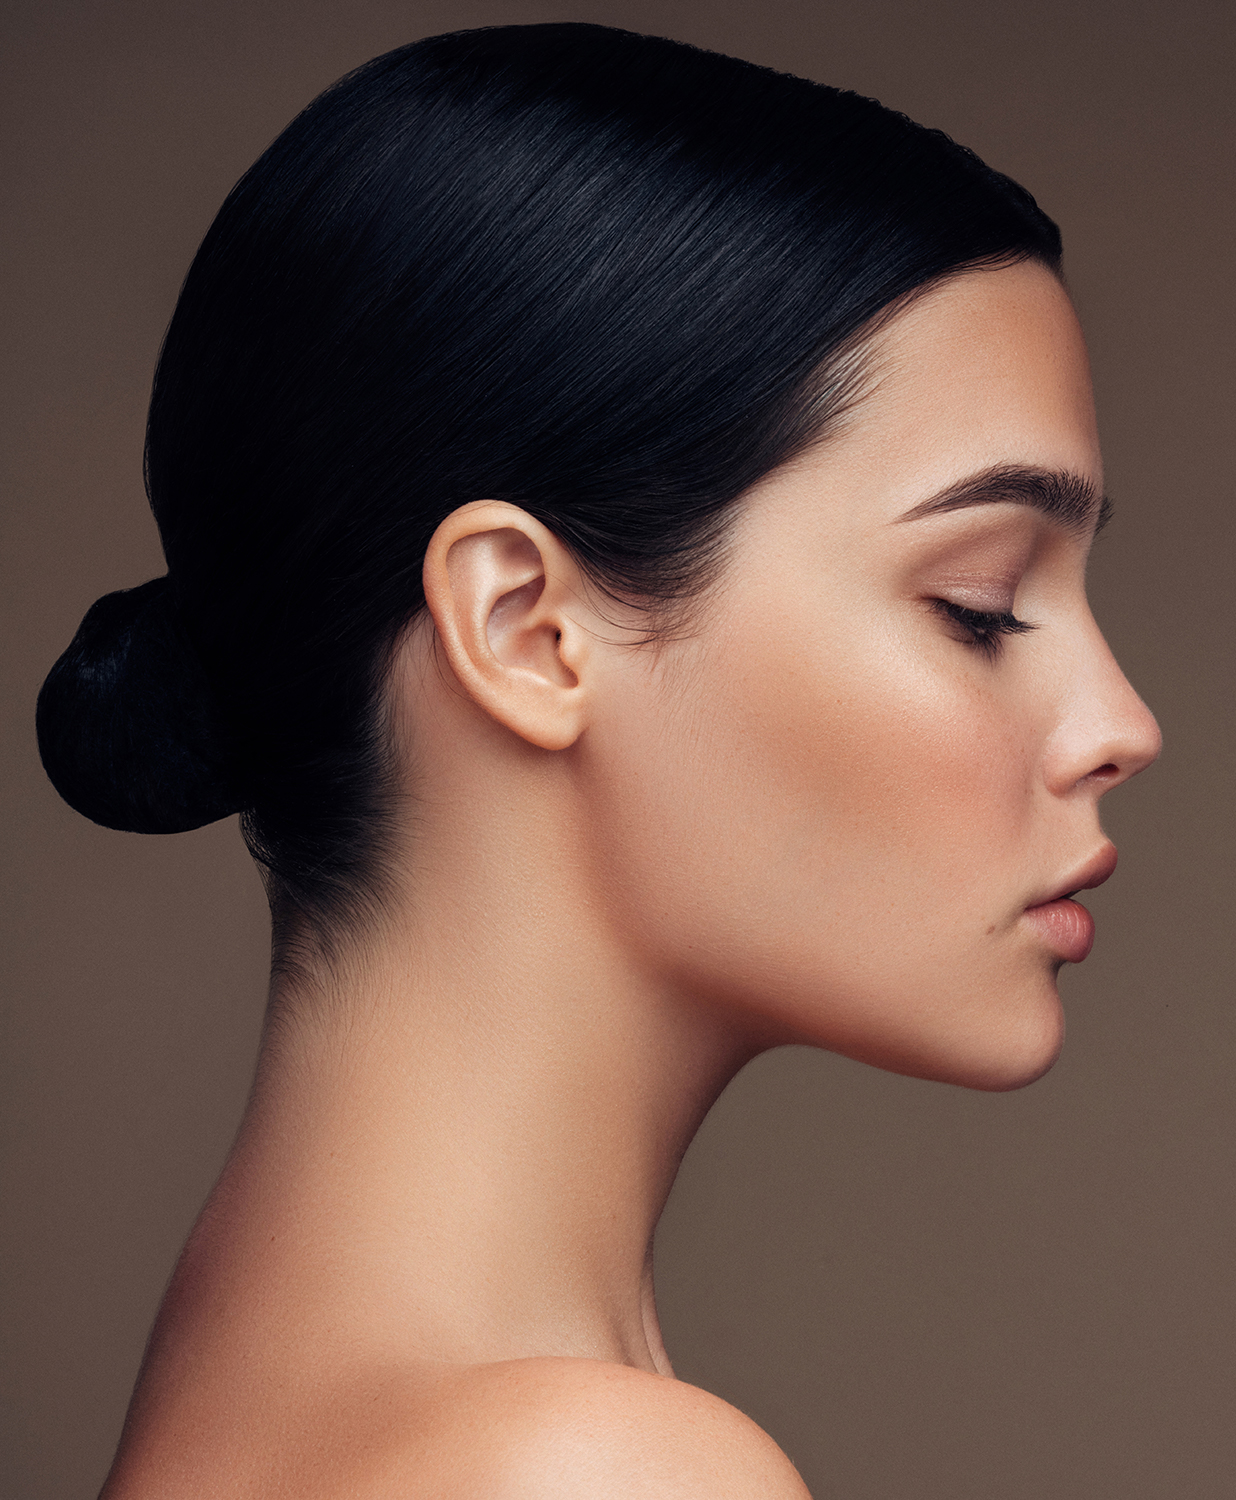 Cynthia M. Poulos MD Blog   What to Expect When Getting Neck Liposuction